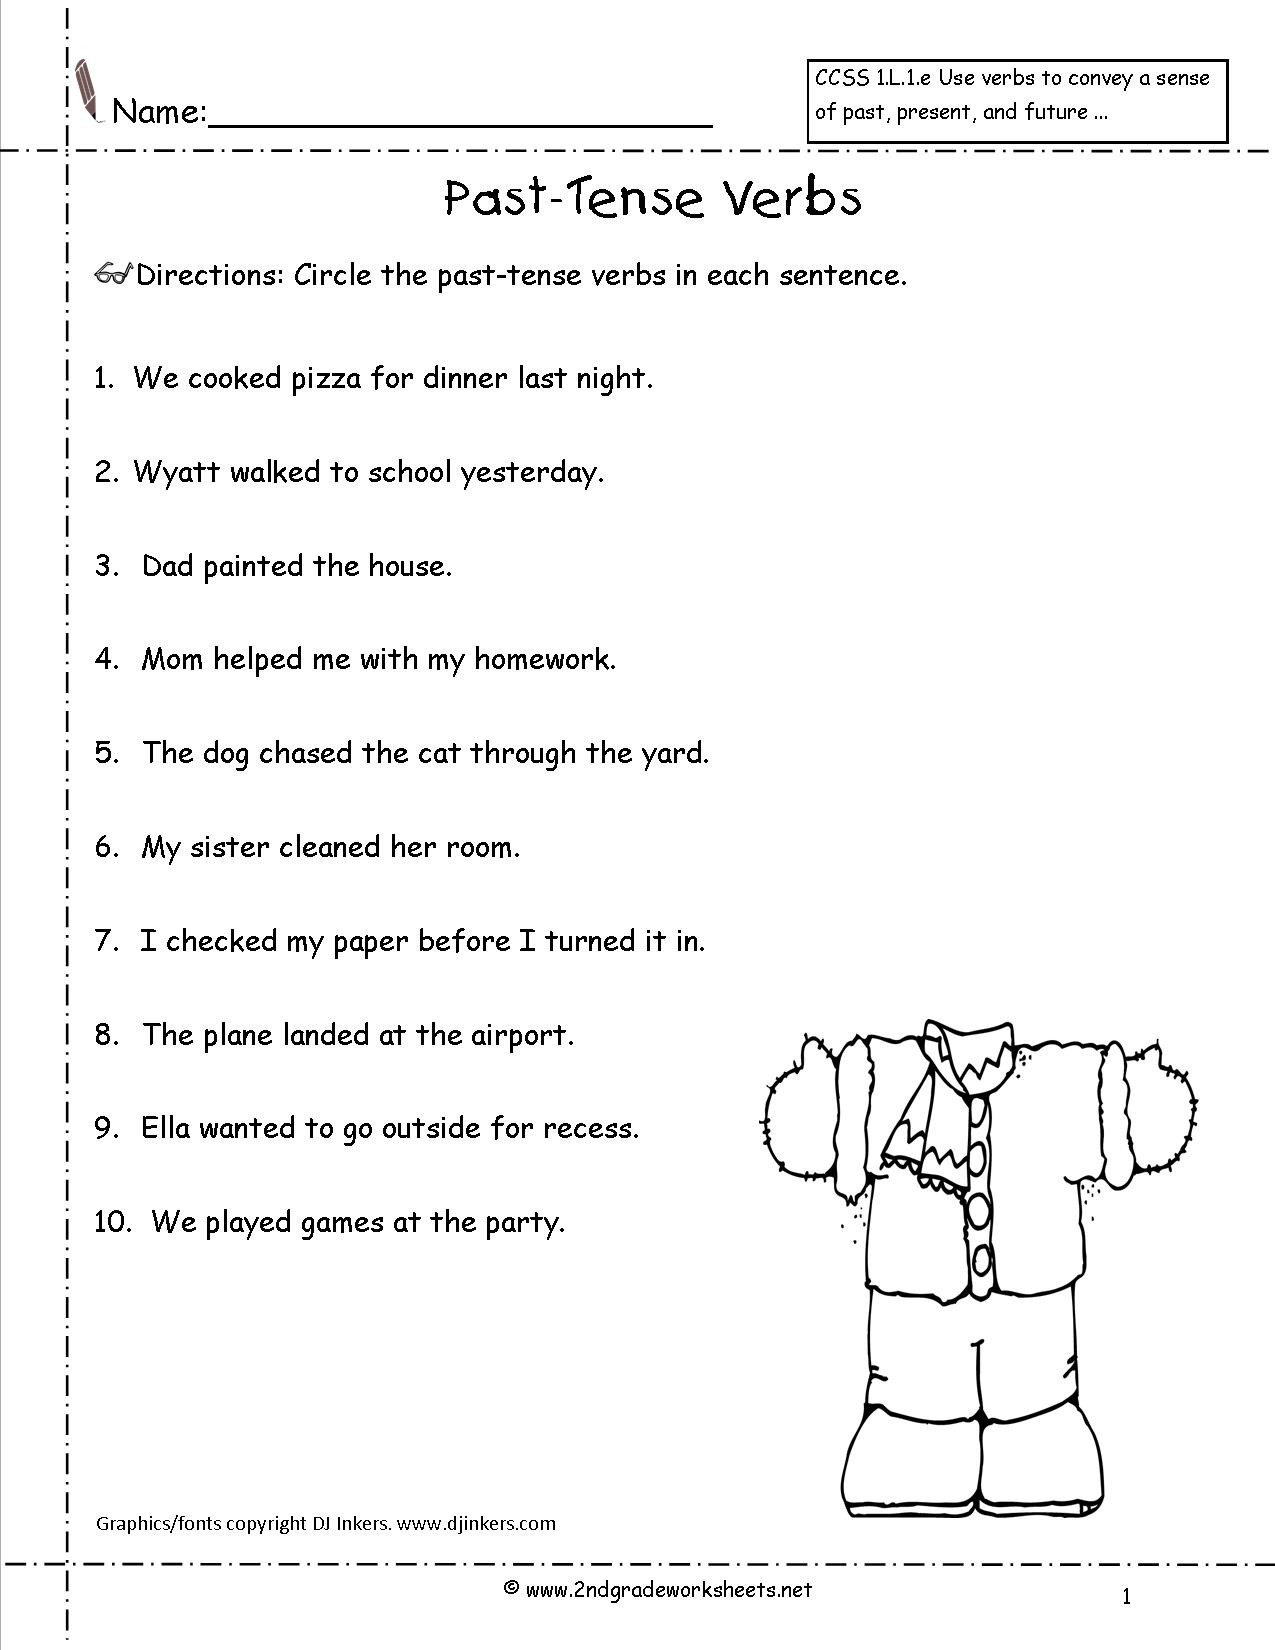 Verbs Worksheets for 1st Grade 4th Grade Verbs Worksheet